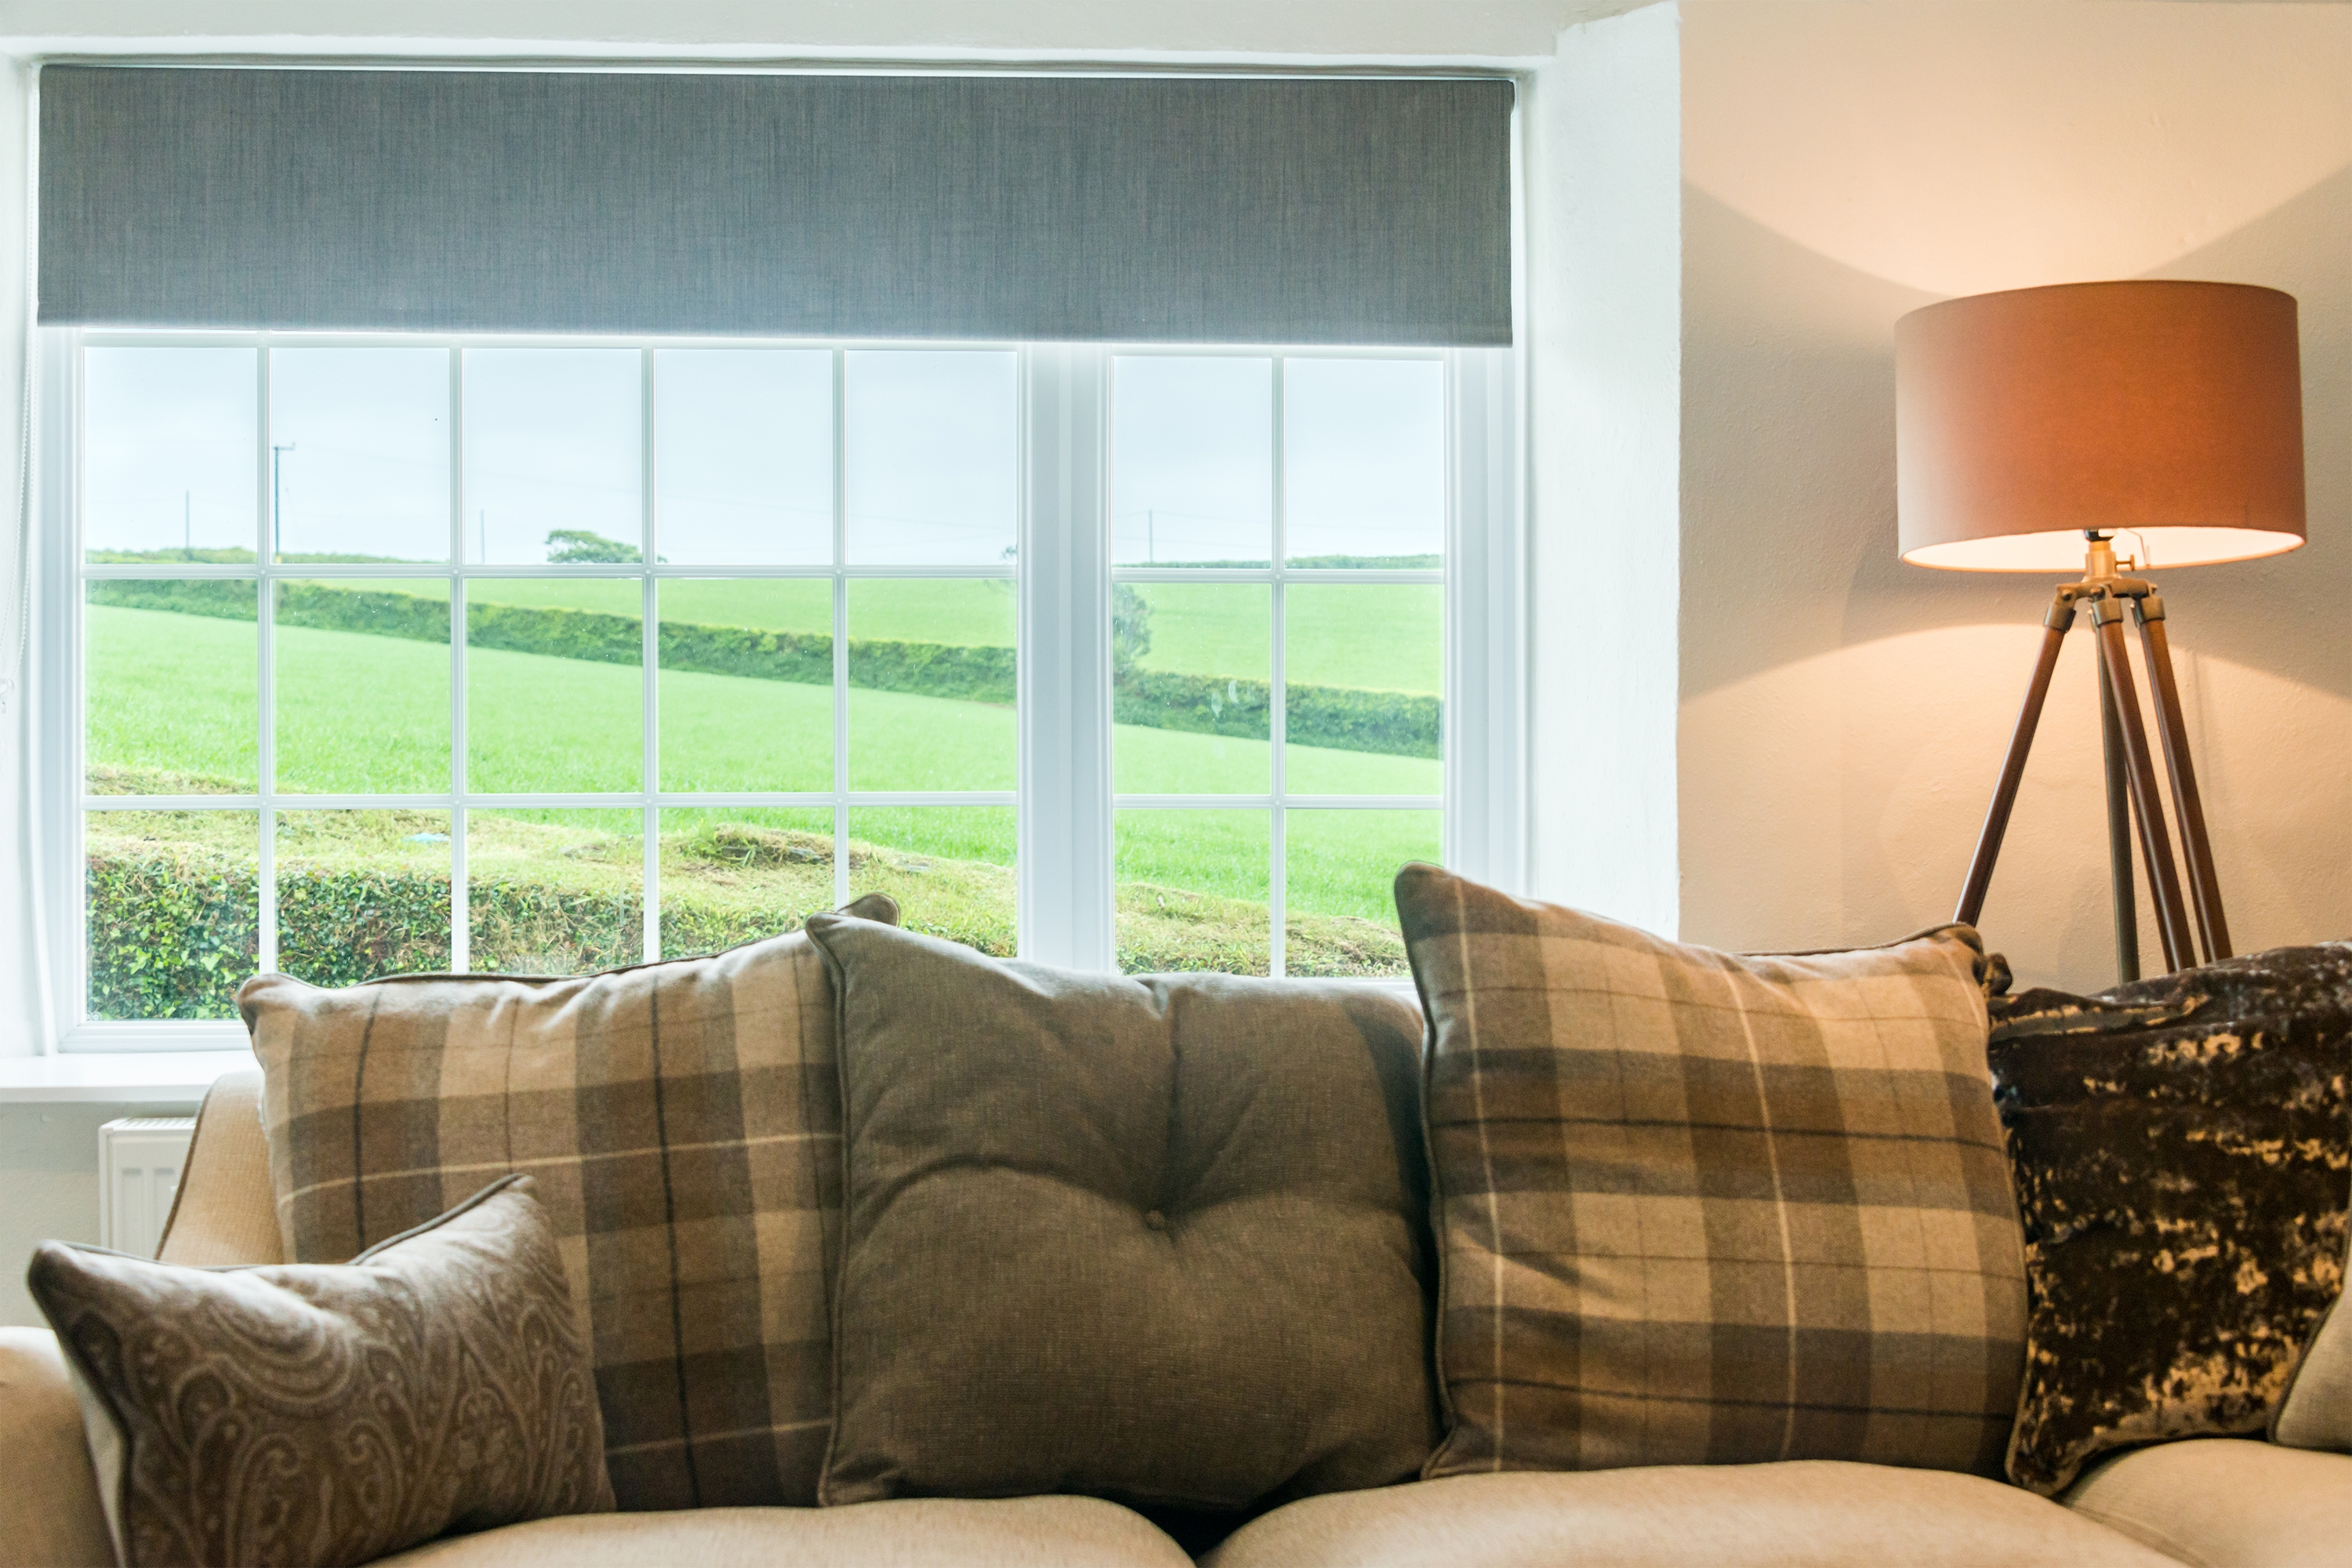 Tweed cushions on sofa in front of window overlooking fields.